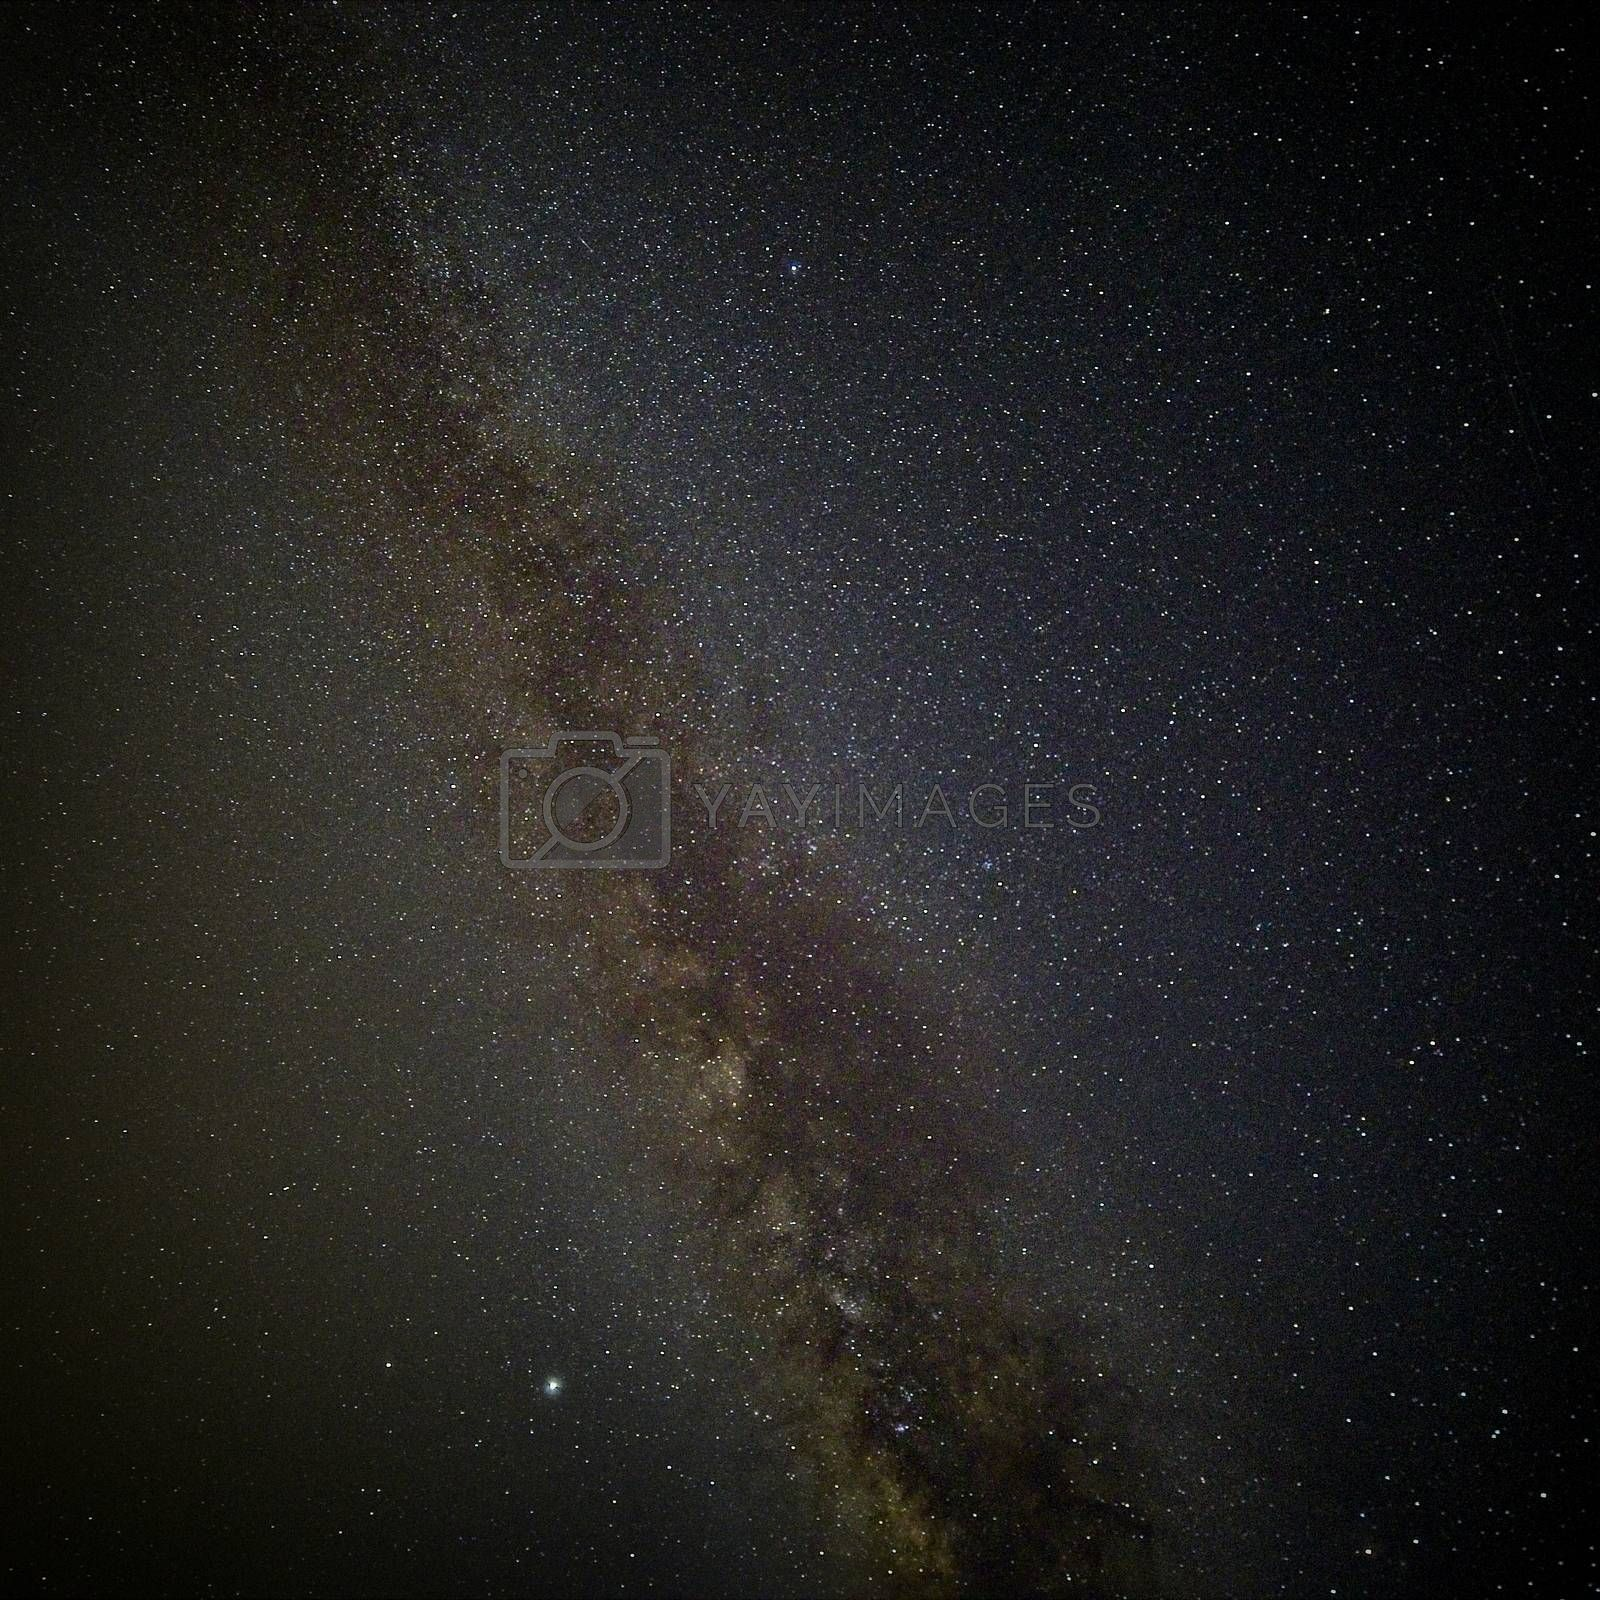 The Milky Way and dark clouds of matter